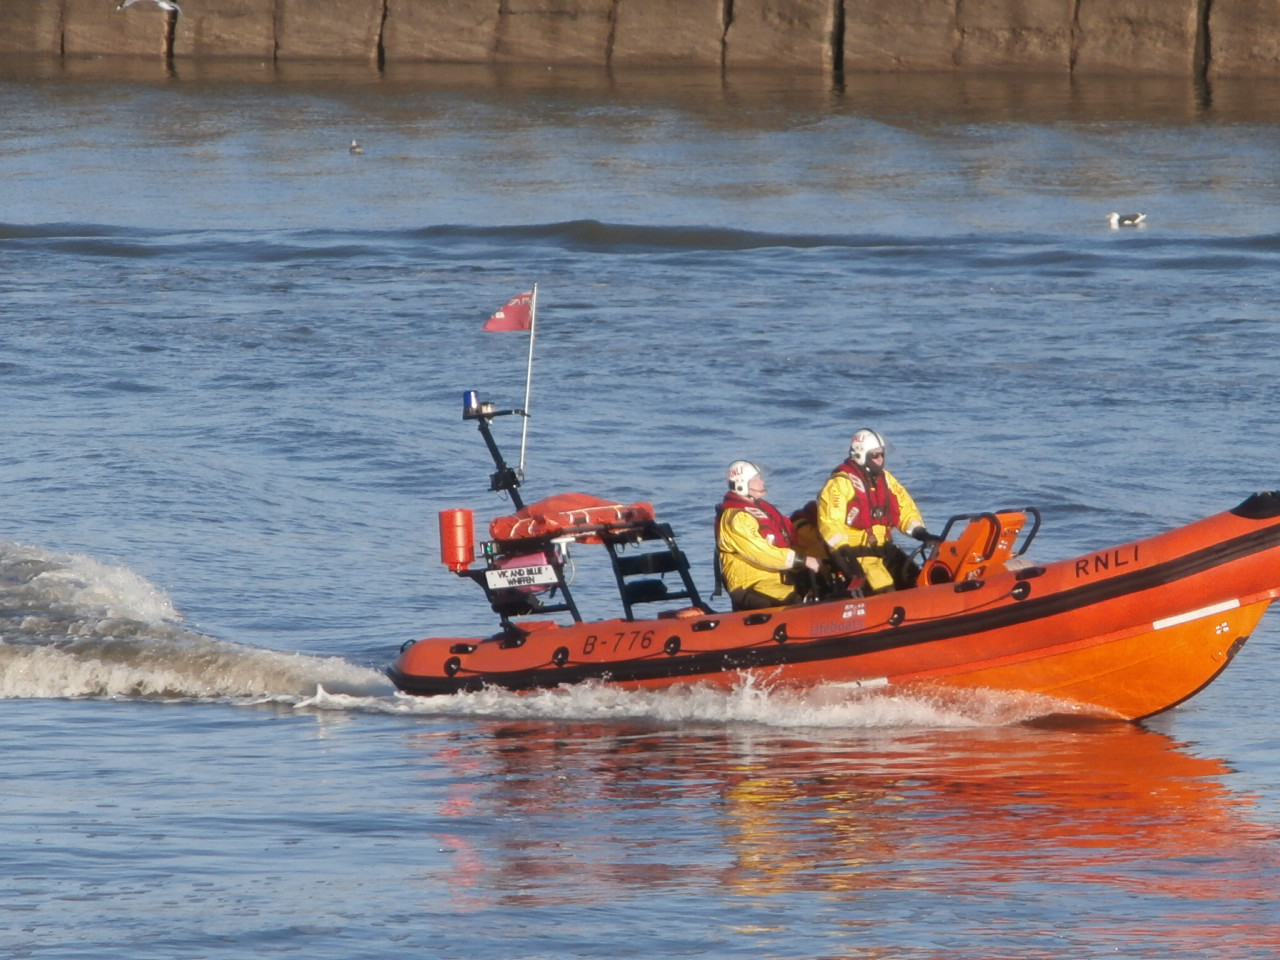 rnli vic & billy whiffen b-776.JPG